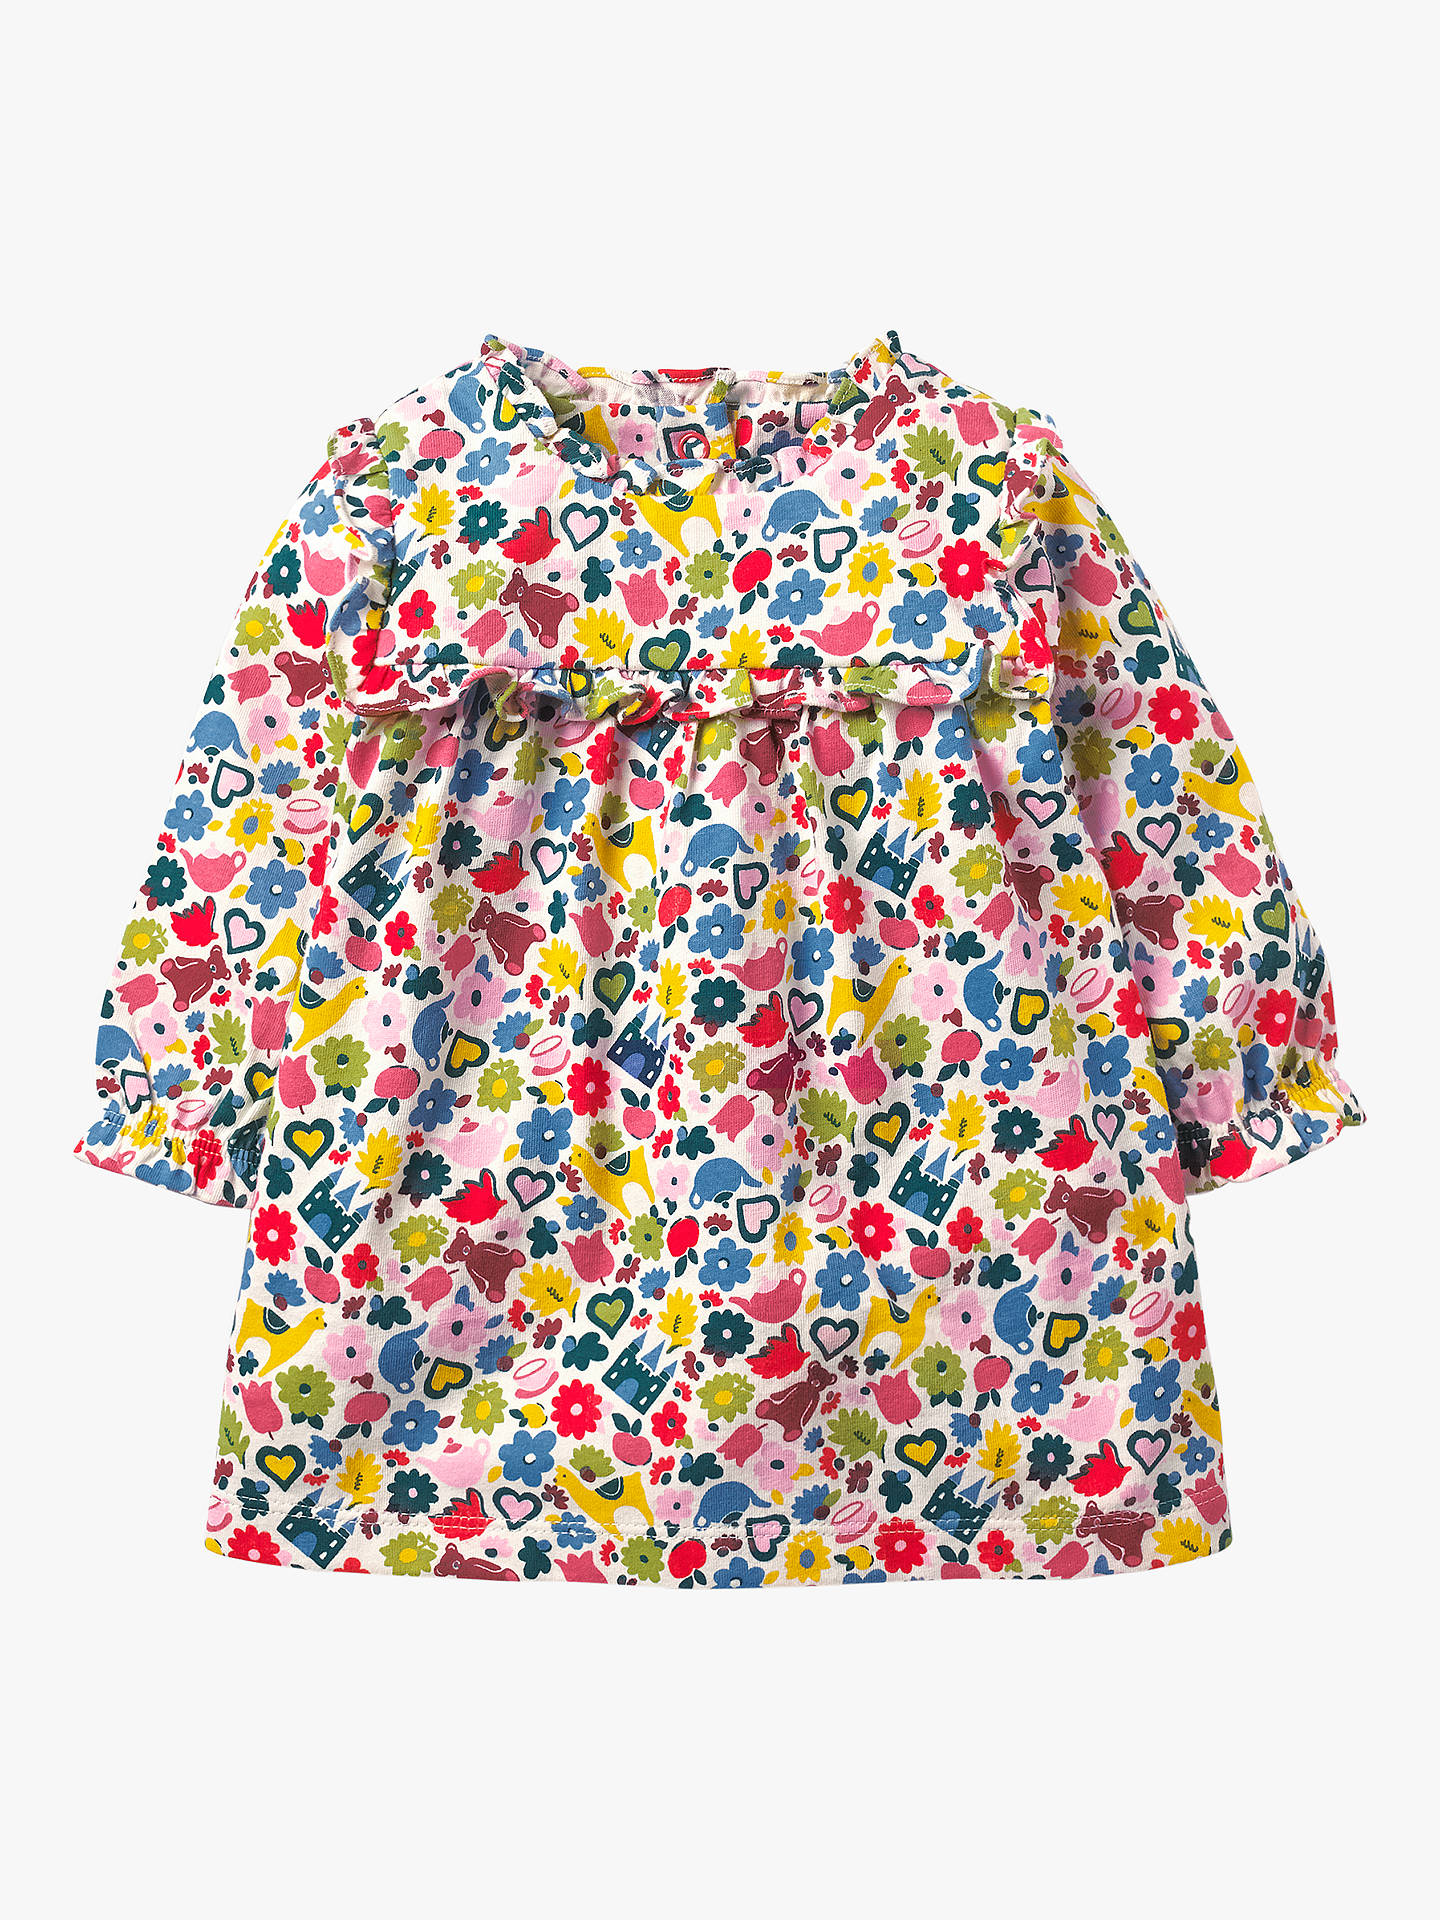 BuyMini Boden Baby Floral Tiny Toys Ruffle Dress, Multi, 18-24 months Online at johnlewis.com